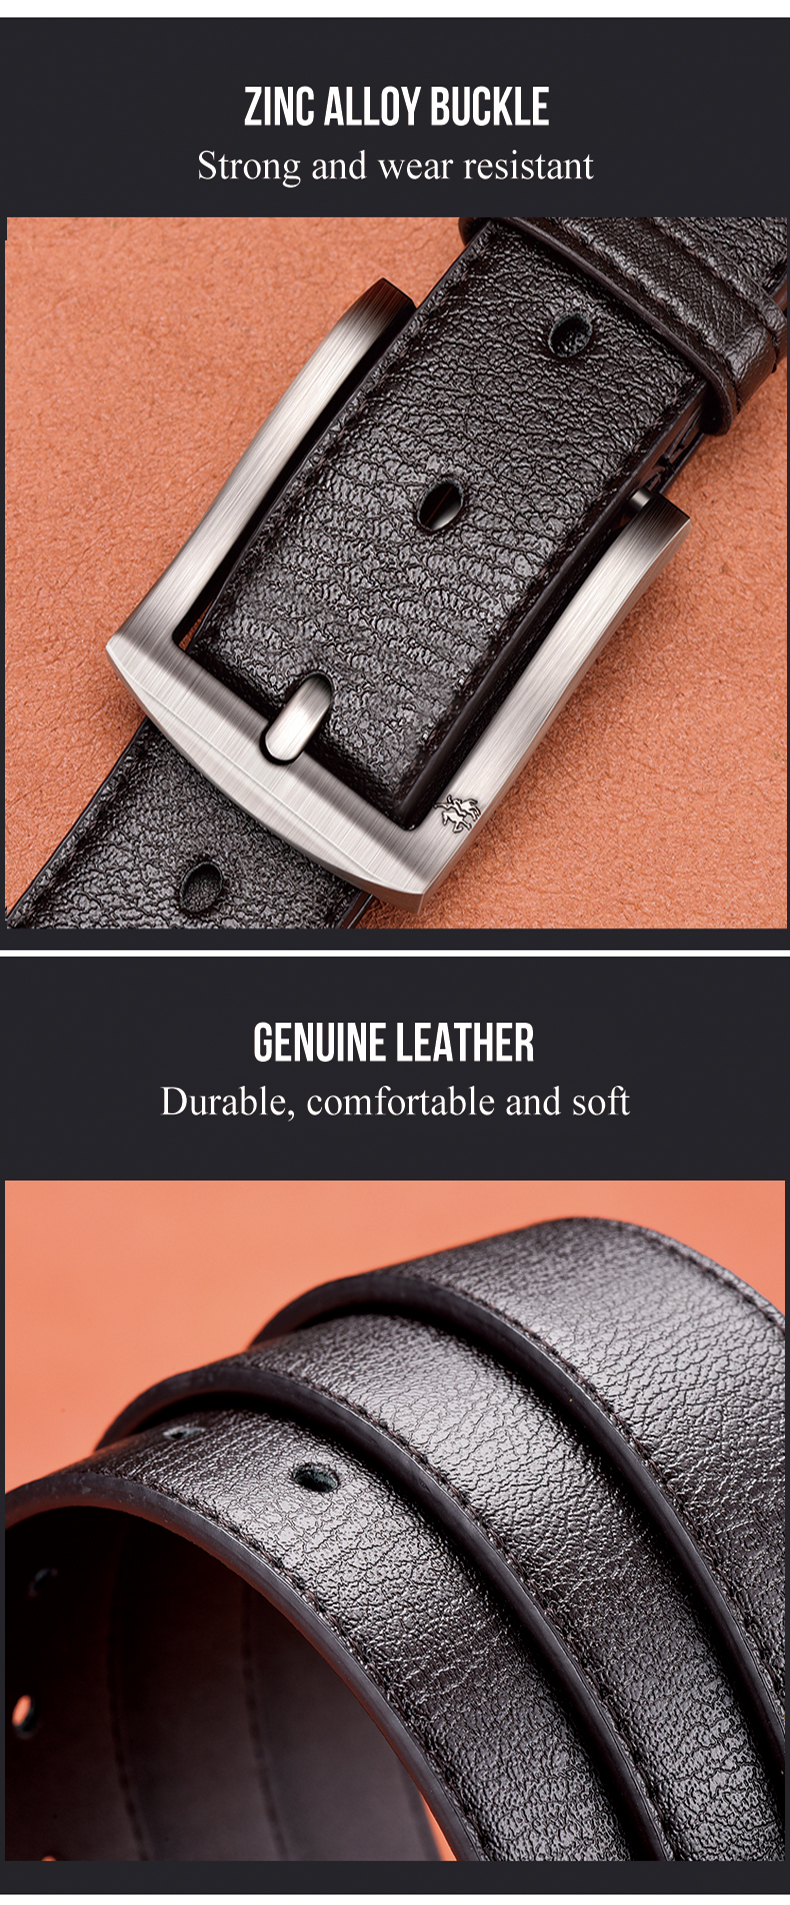 H3fa21584cf814b928710972dda869b06U - NO.ONEPAUL cow genuine leather luxury strap male belts for men new fashion classice vintage pin buckle men belt High Quality